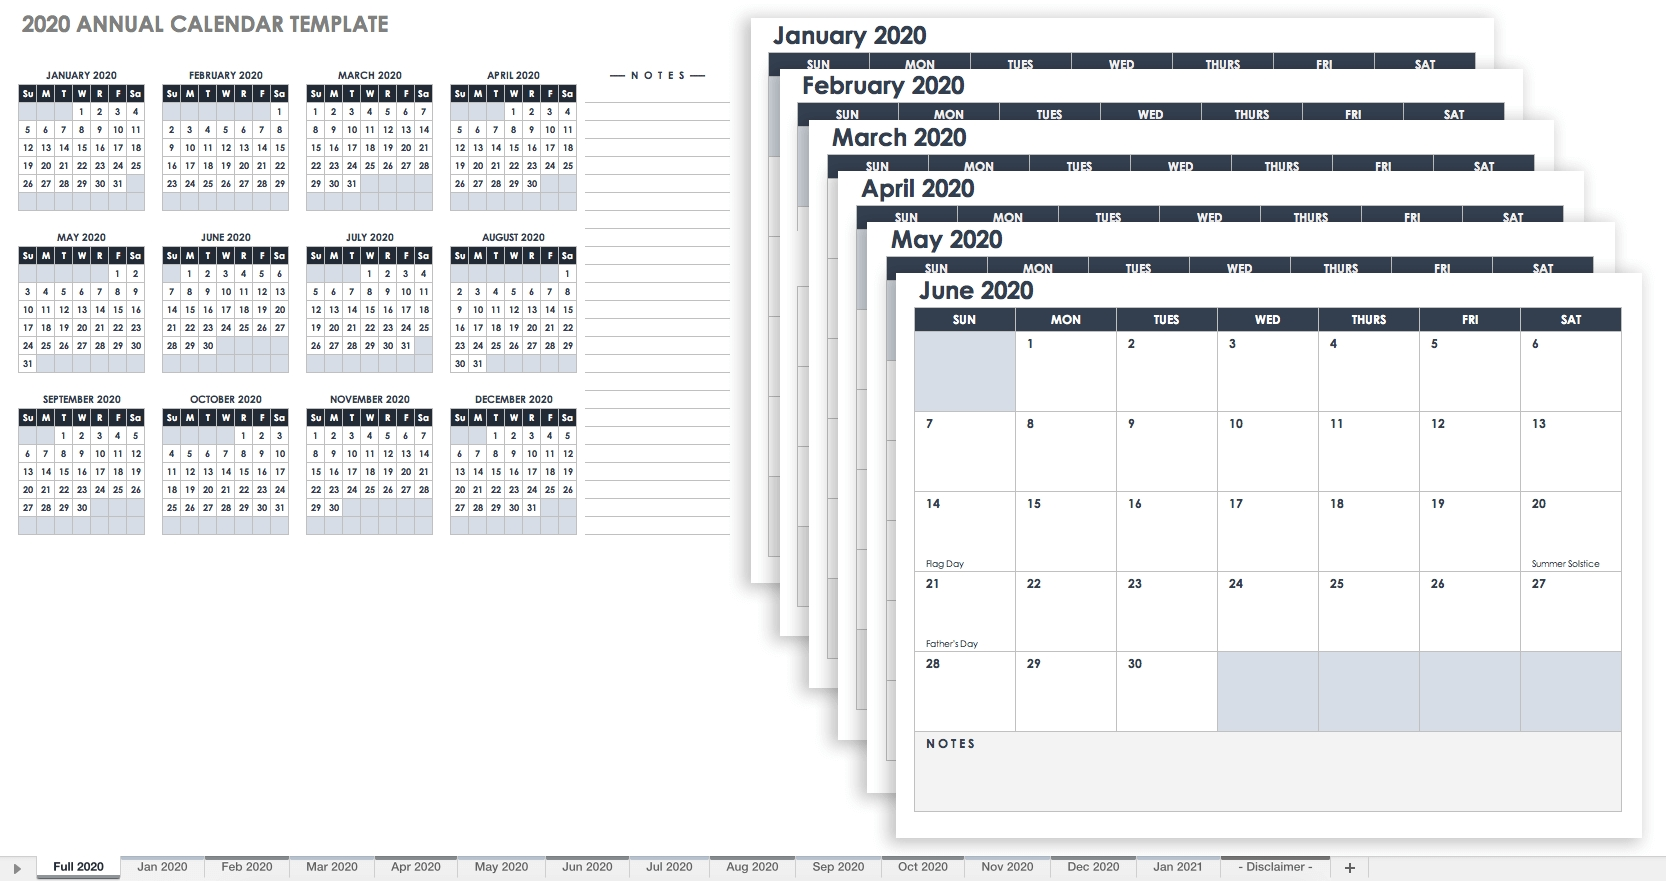 Free, Printable Excel Calendar Templates For 2019 & On | Smartsheet 5 Year Monthly Calendar